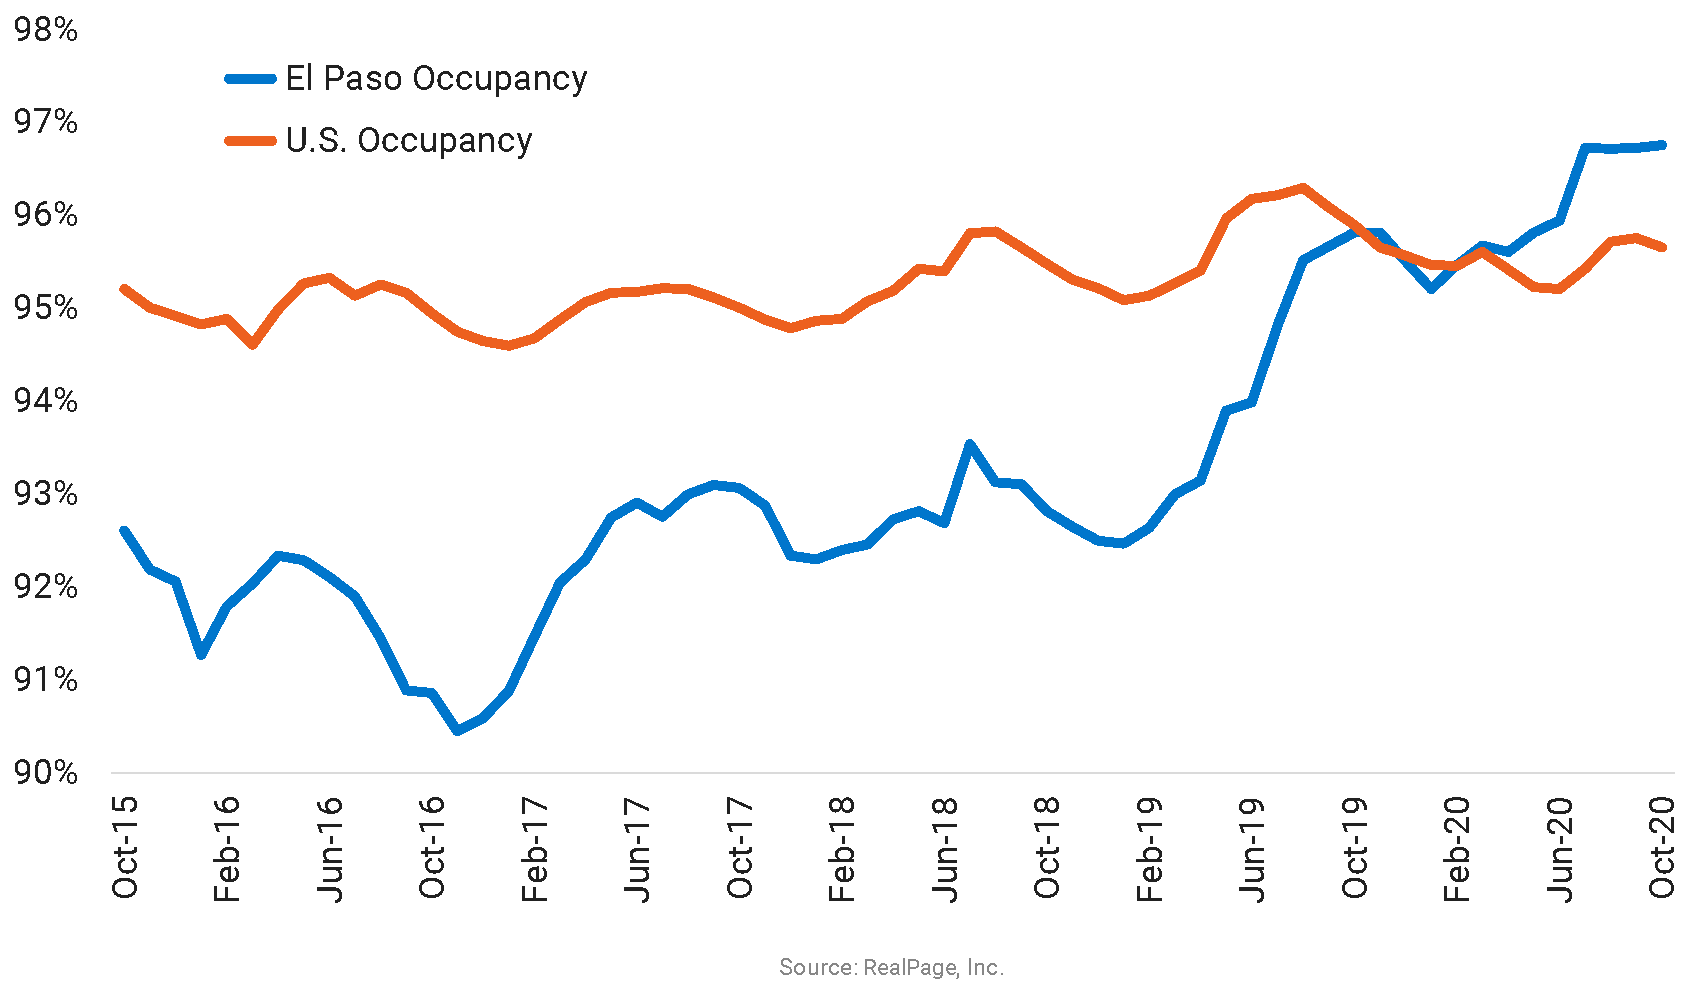 Apartment Occupancy in El Paso Hits a Decade High